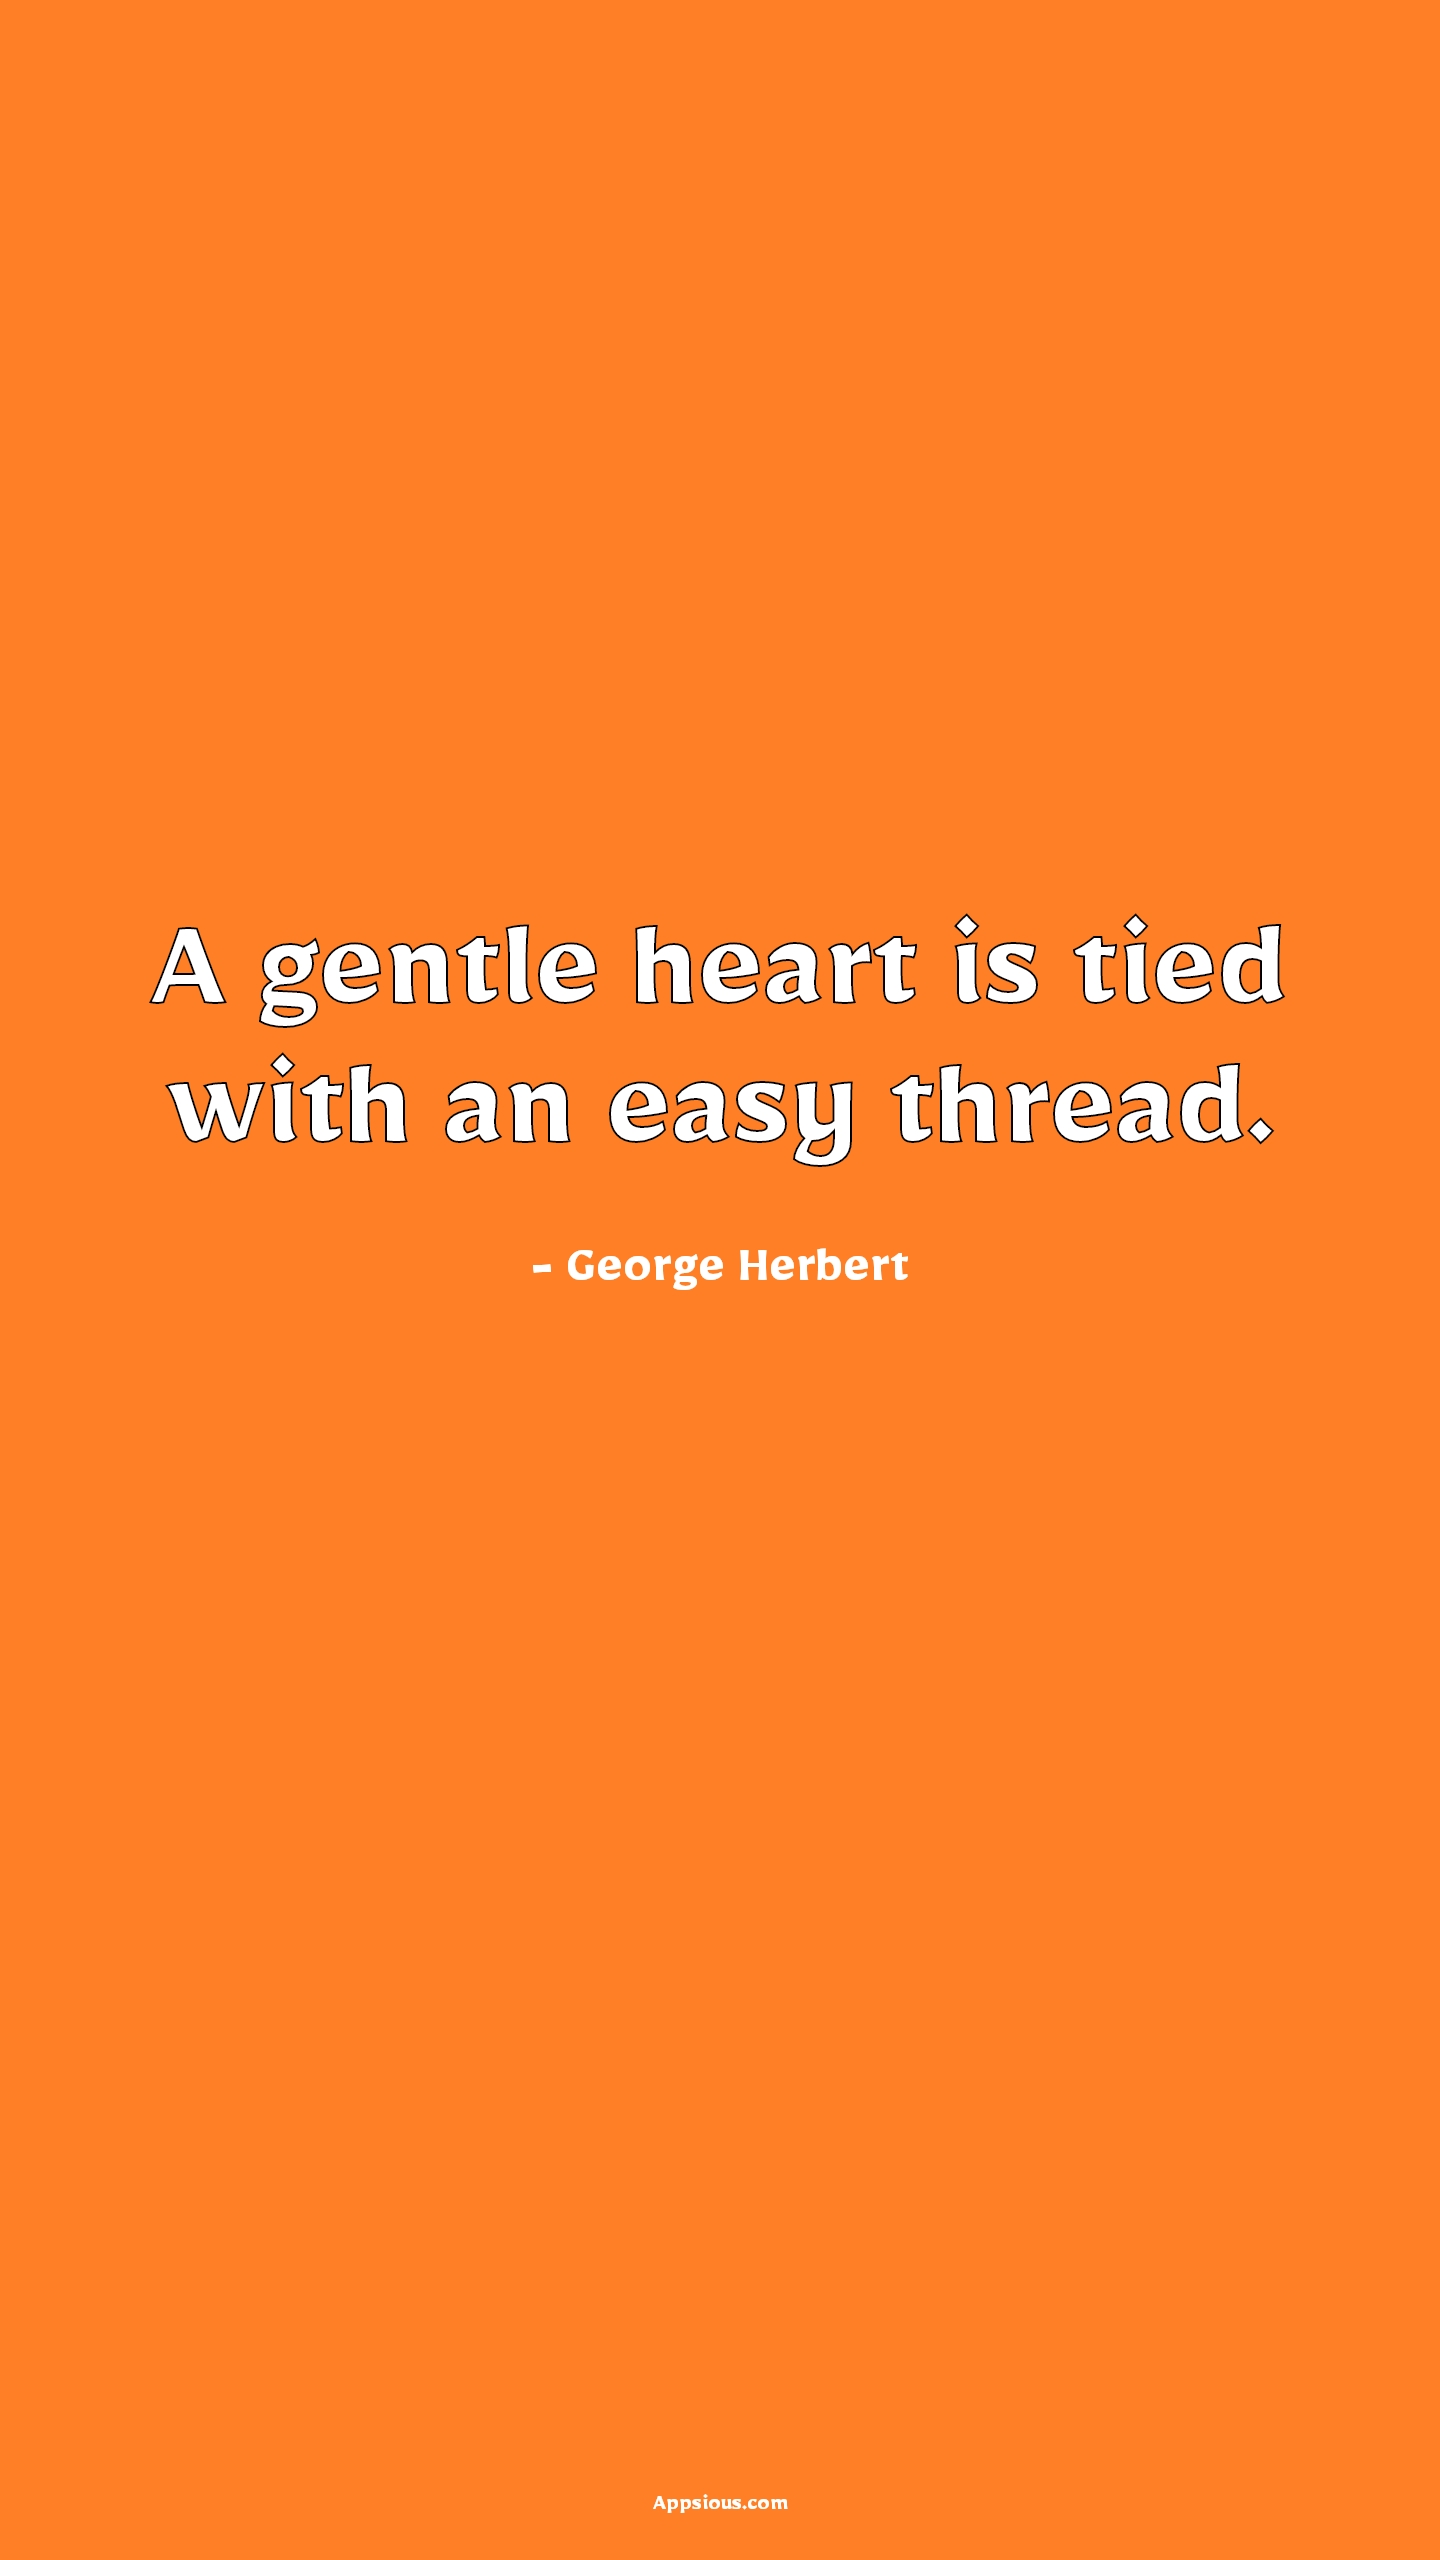 A gentle heart is tied with an easy thread.